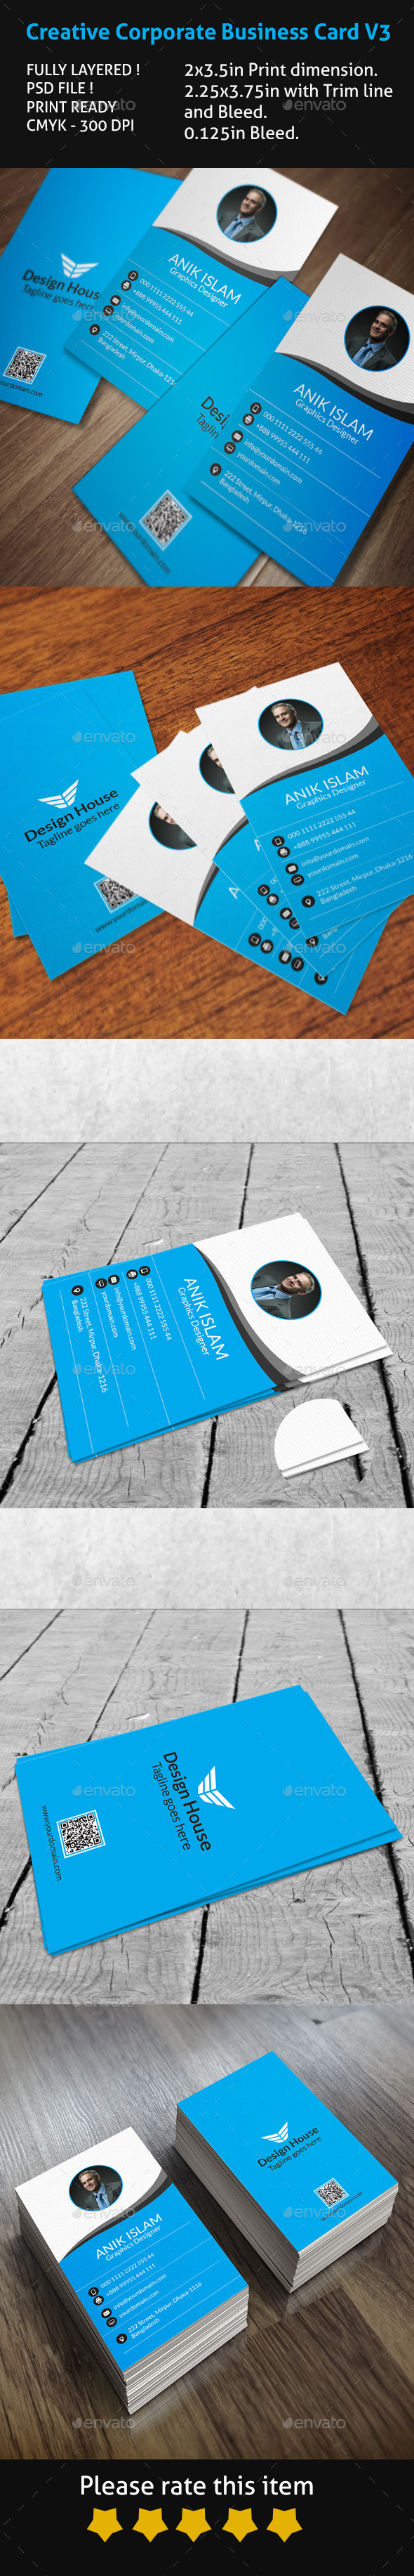 GraphicRiver Creative Corporate Business Card V3 9852271